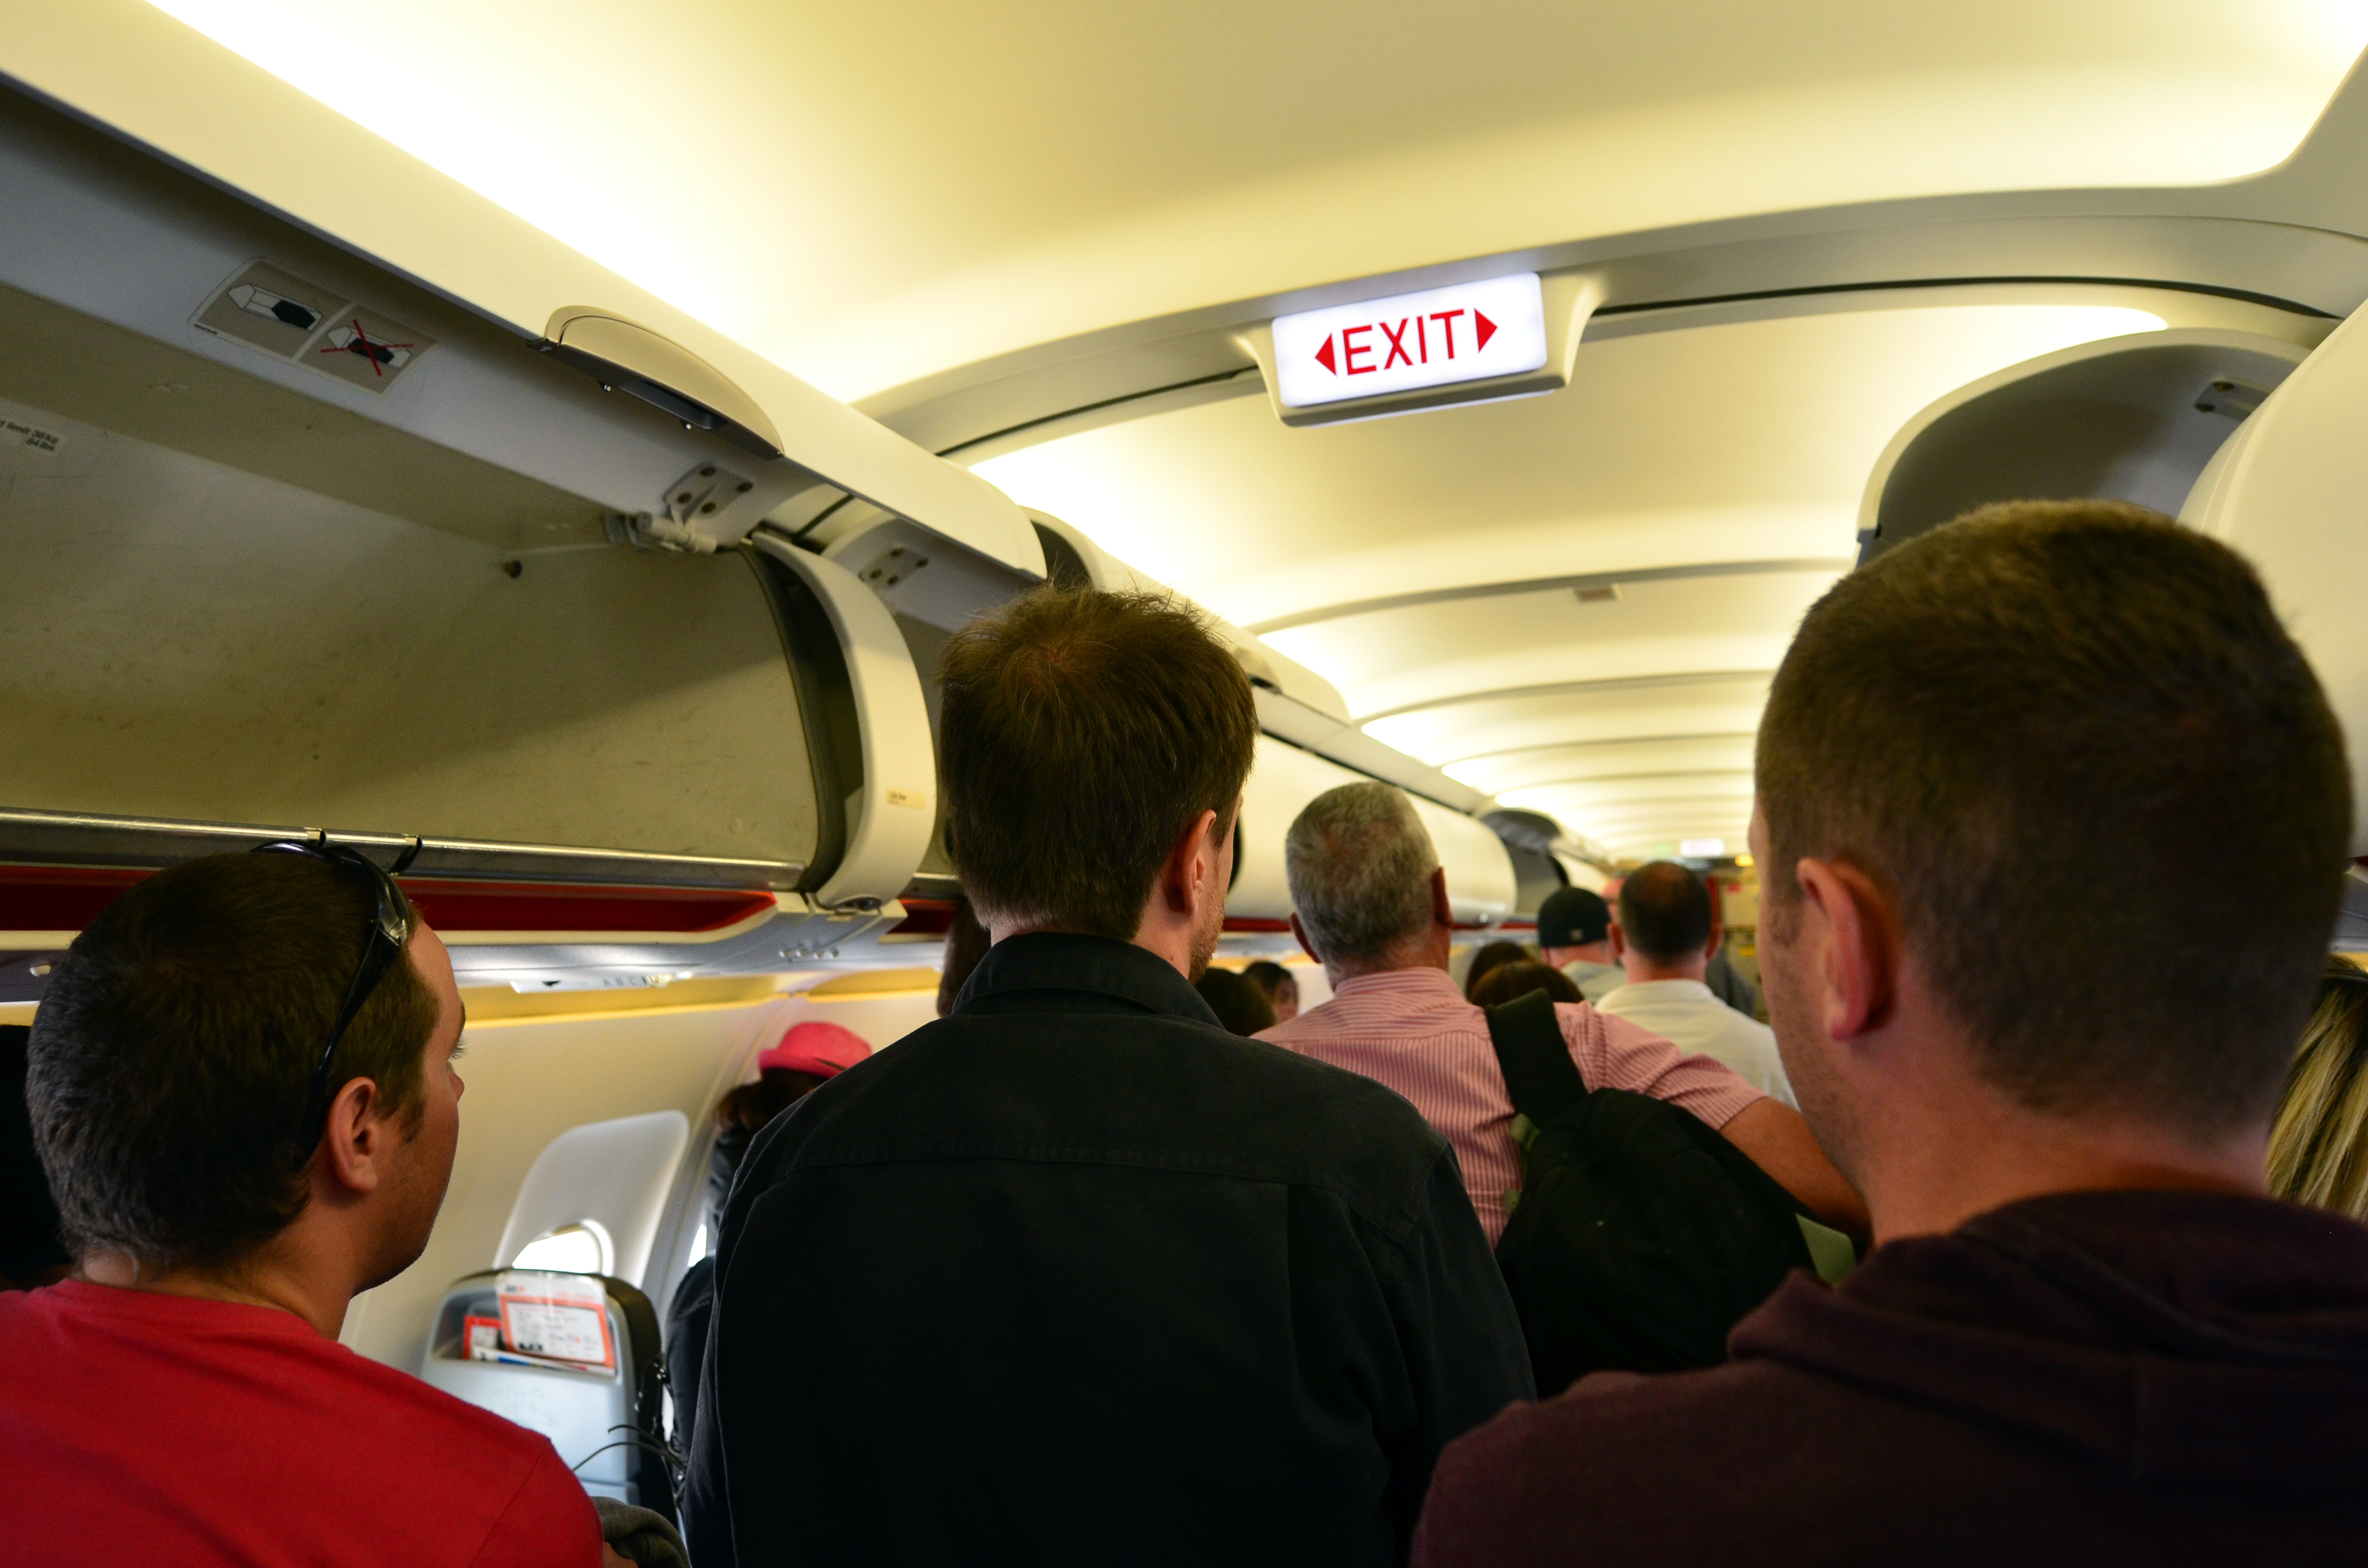 The way we get off airplanes makes absolutely no sense - Vox